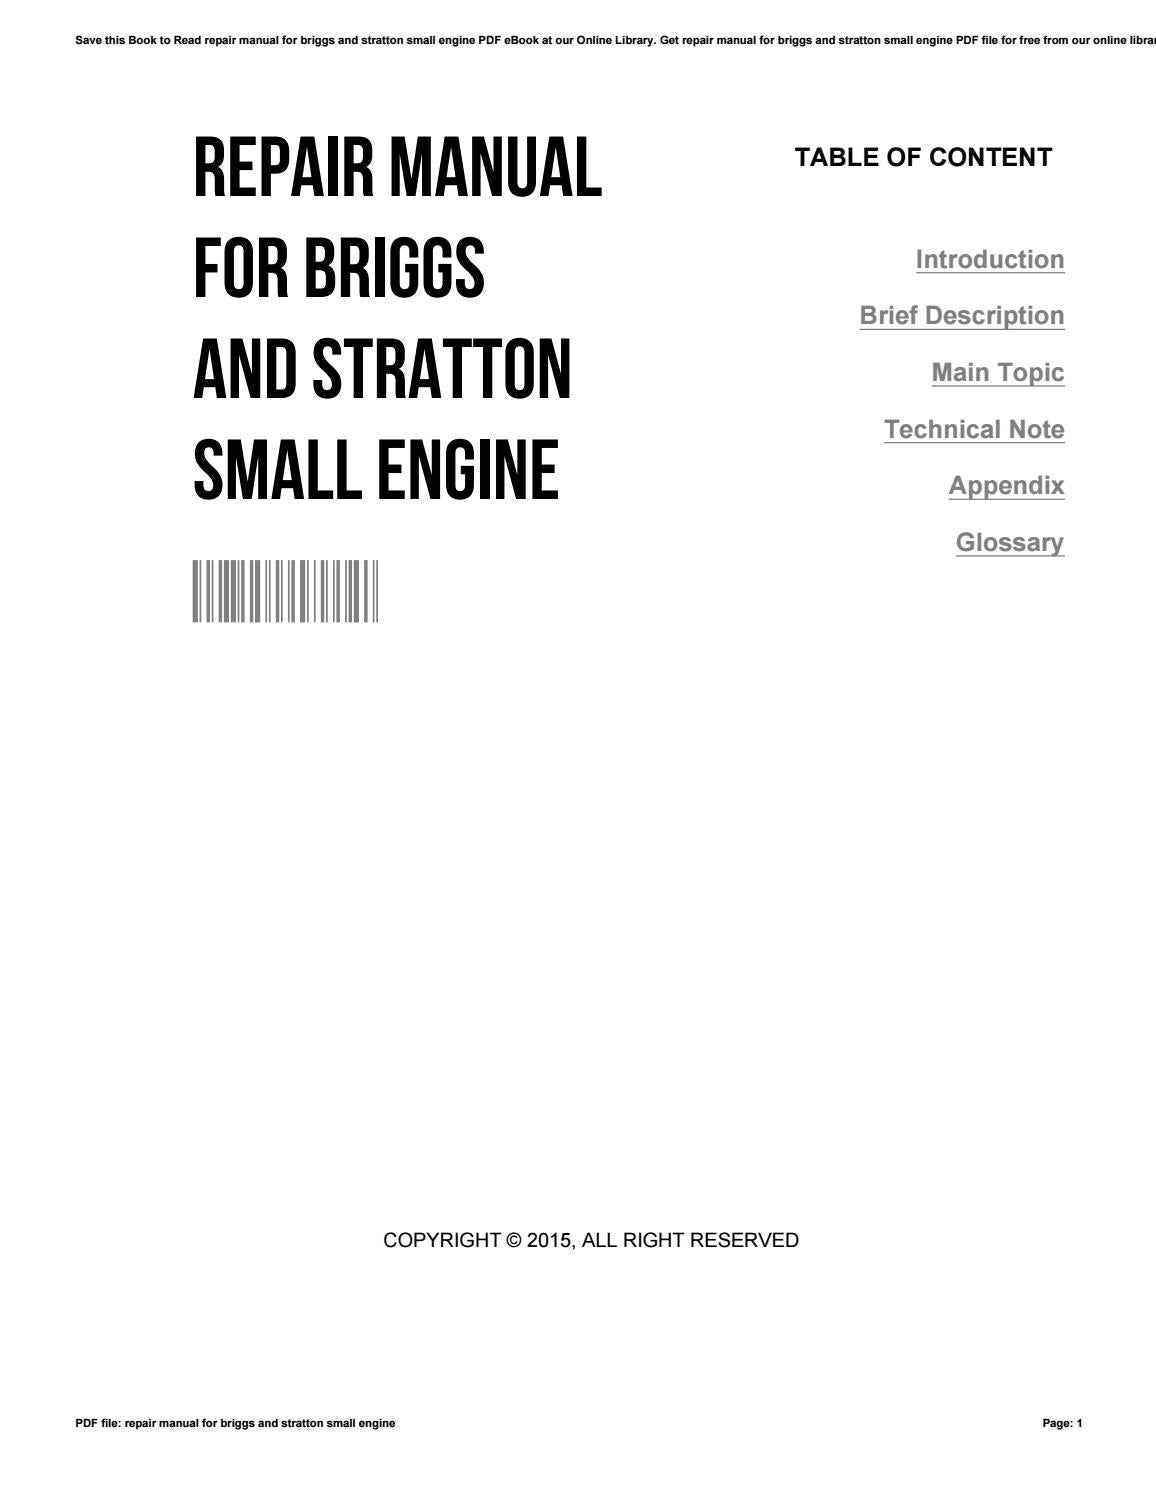 Repair manual for briggs and stratton small engine by